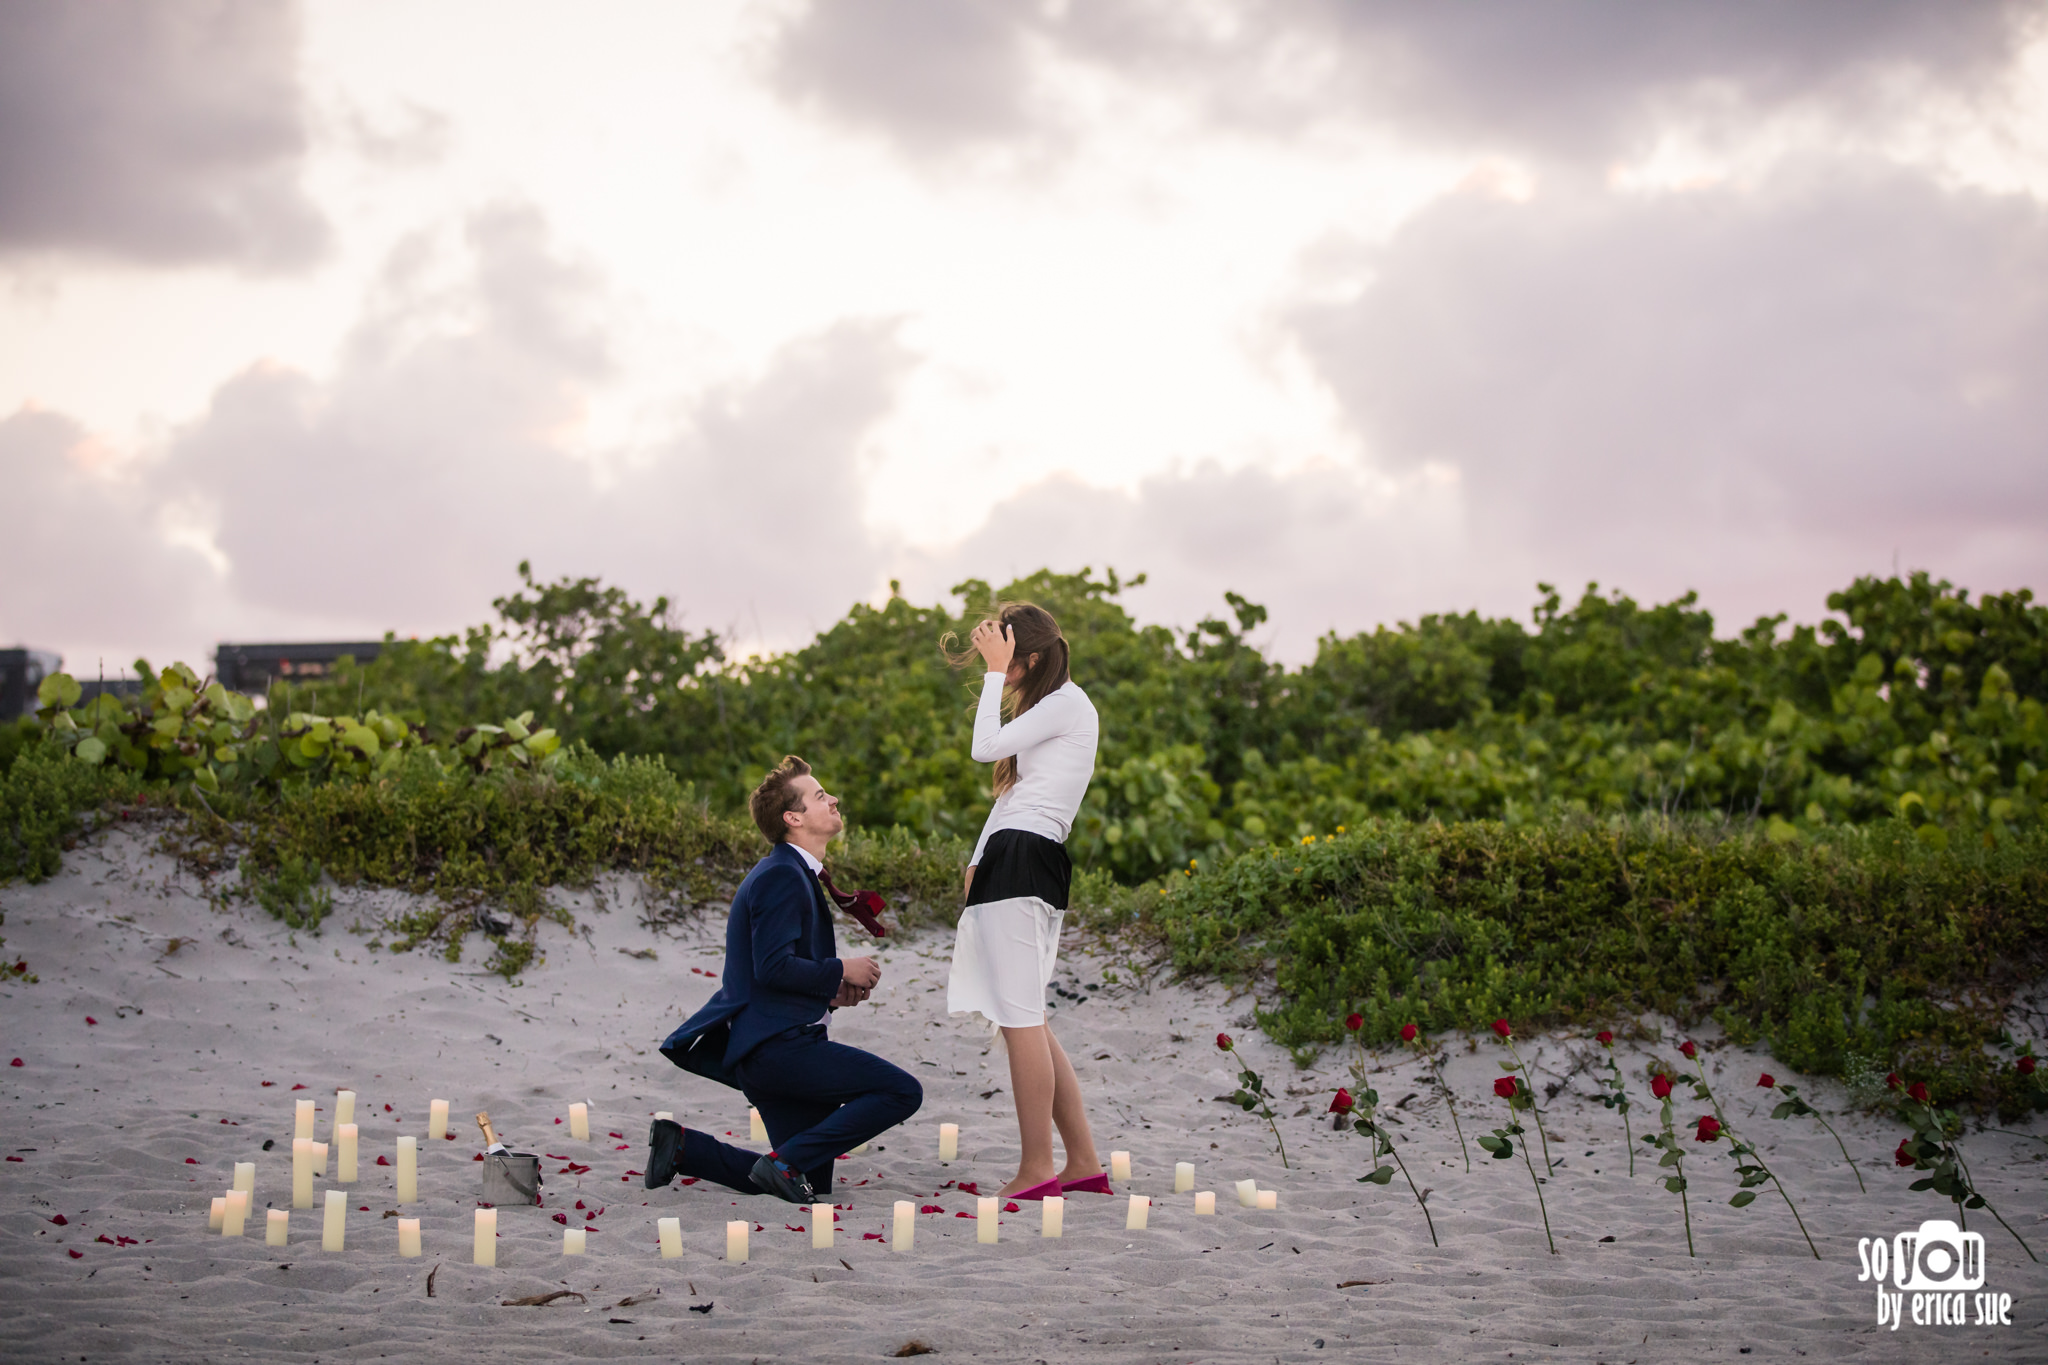 so-you-by-erica-sue-hollywood-fl-photographer-beach-engagement-flowers-candles-4830.jpg